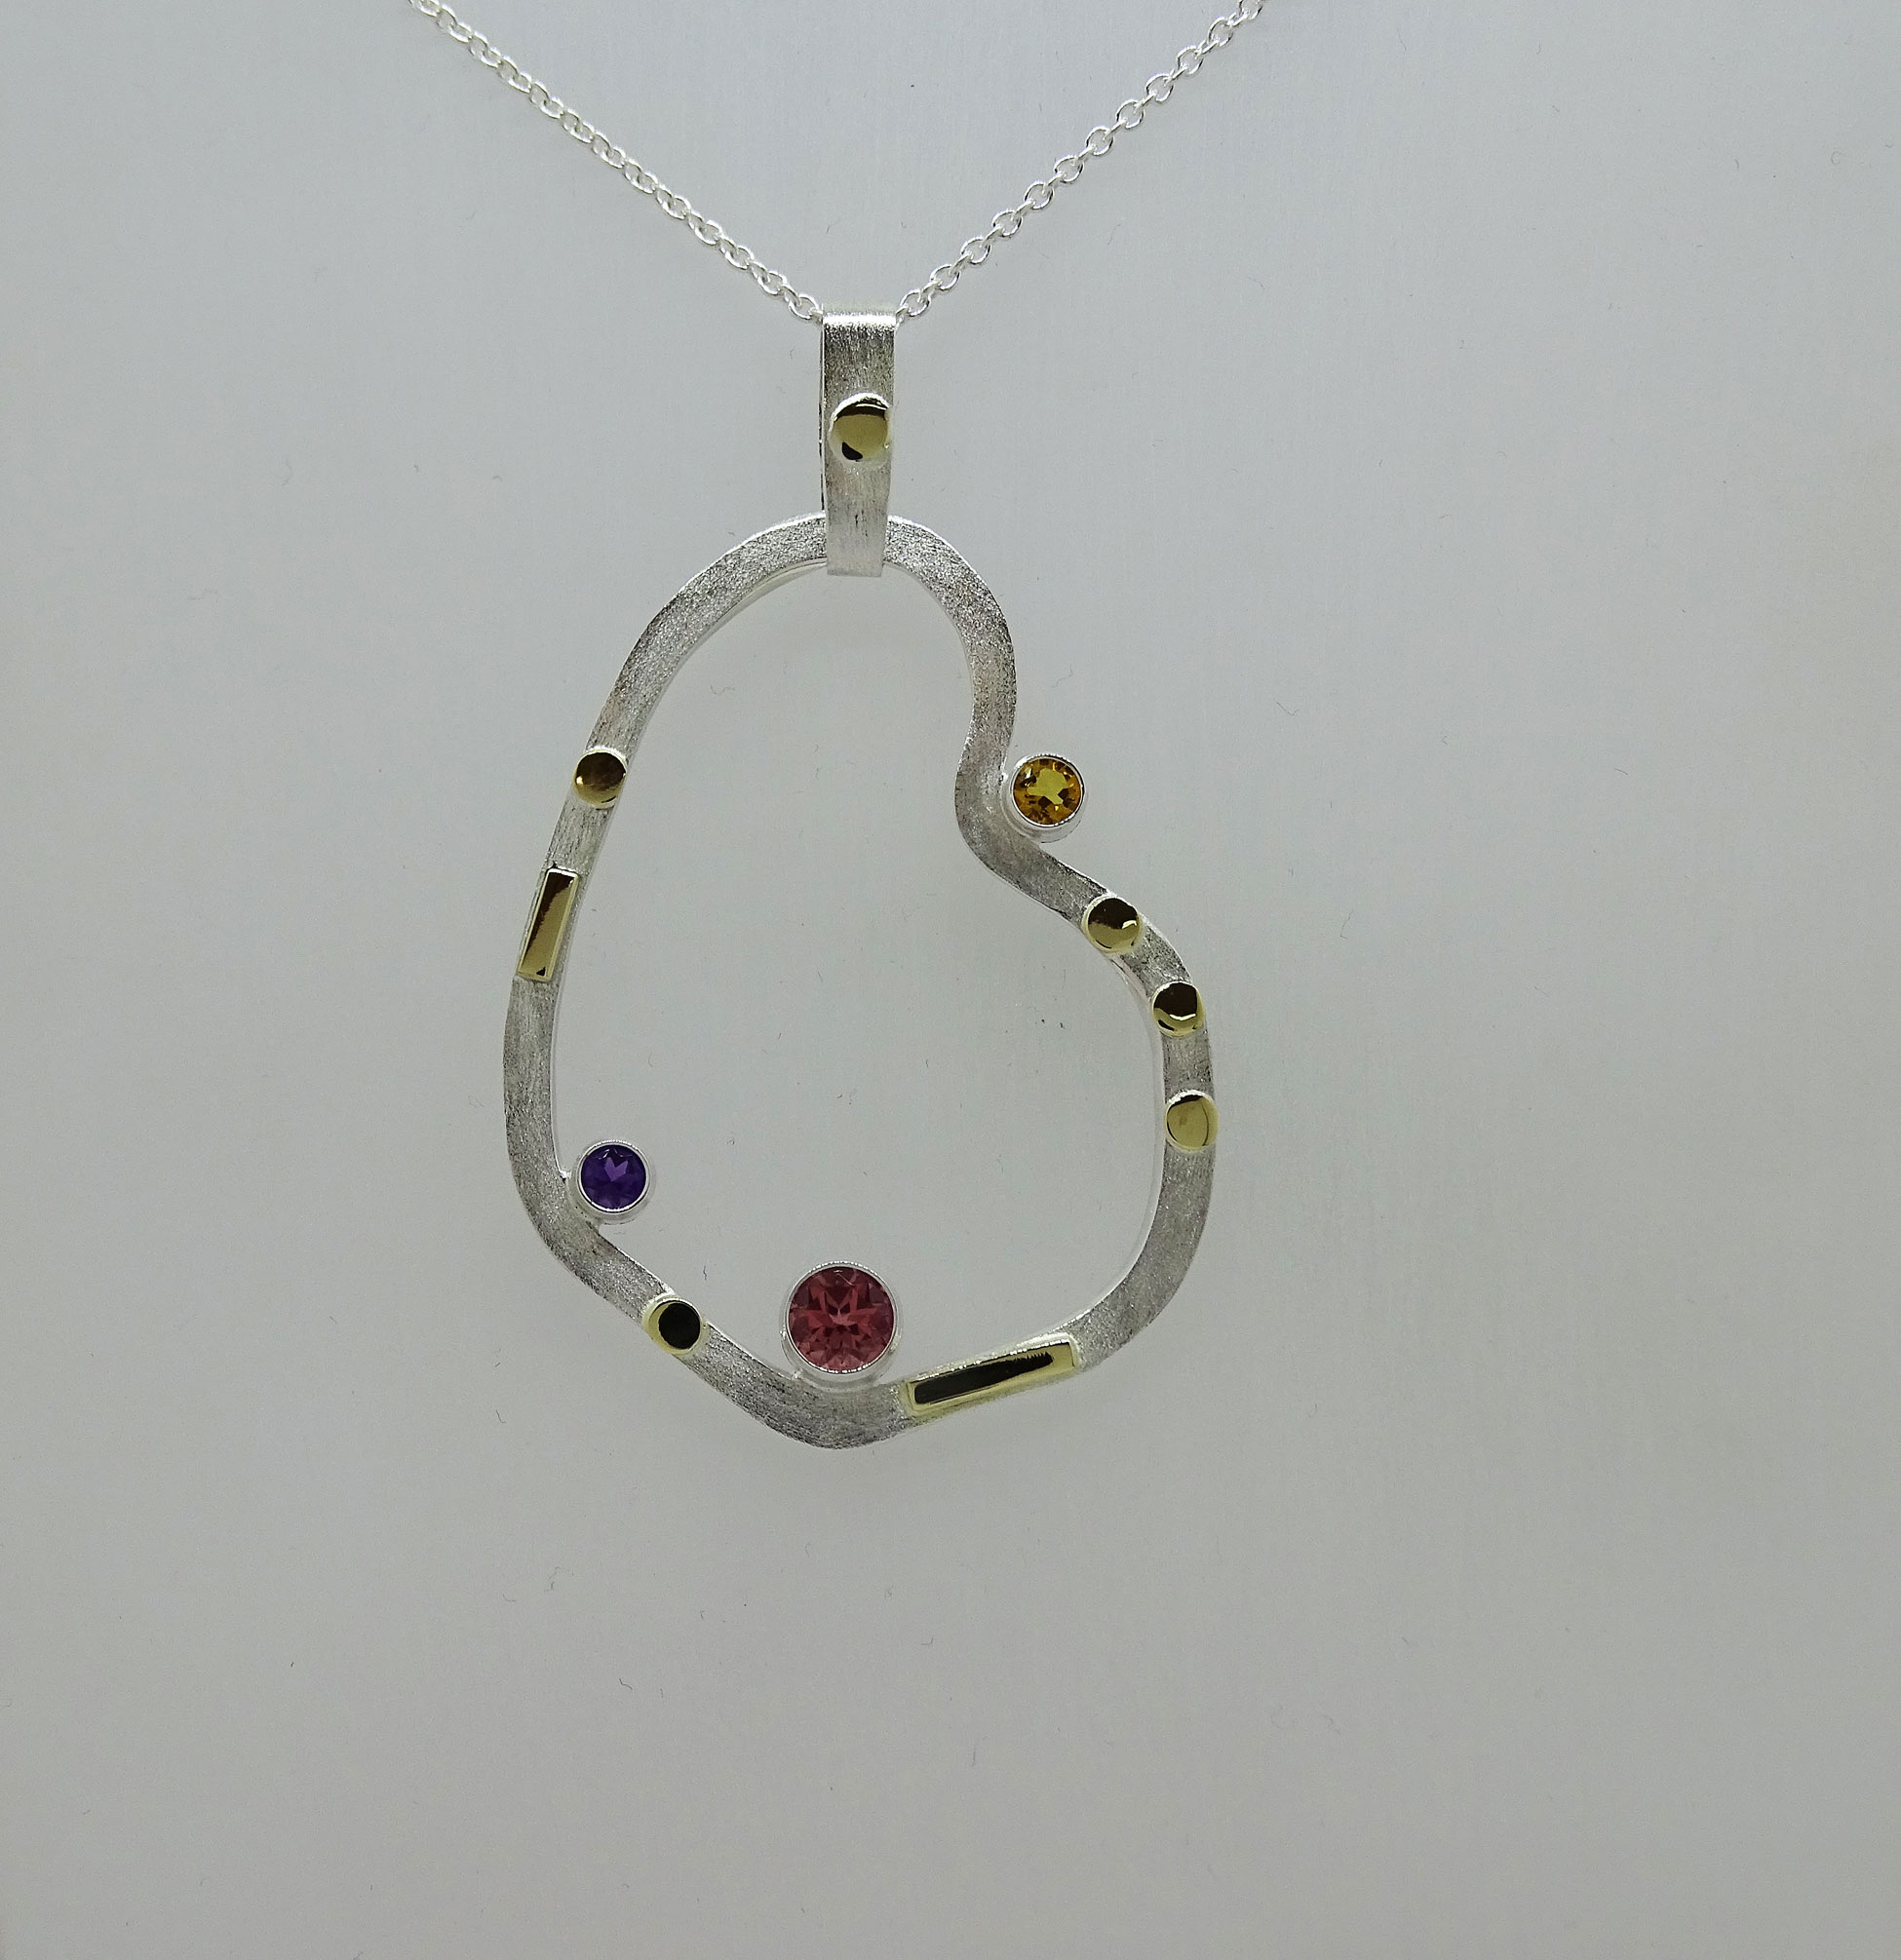 Abstract Form Pendant